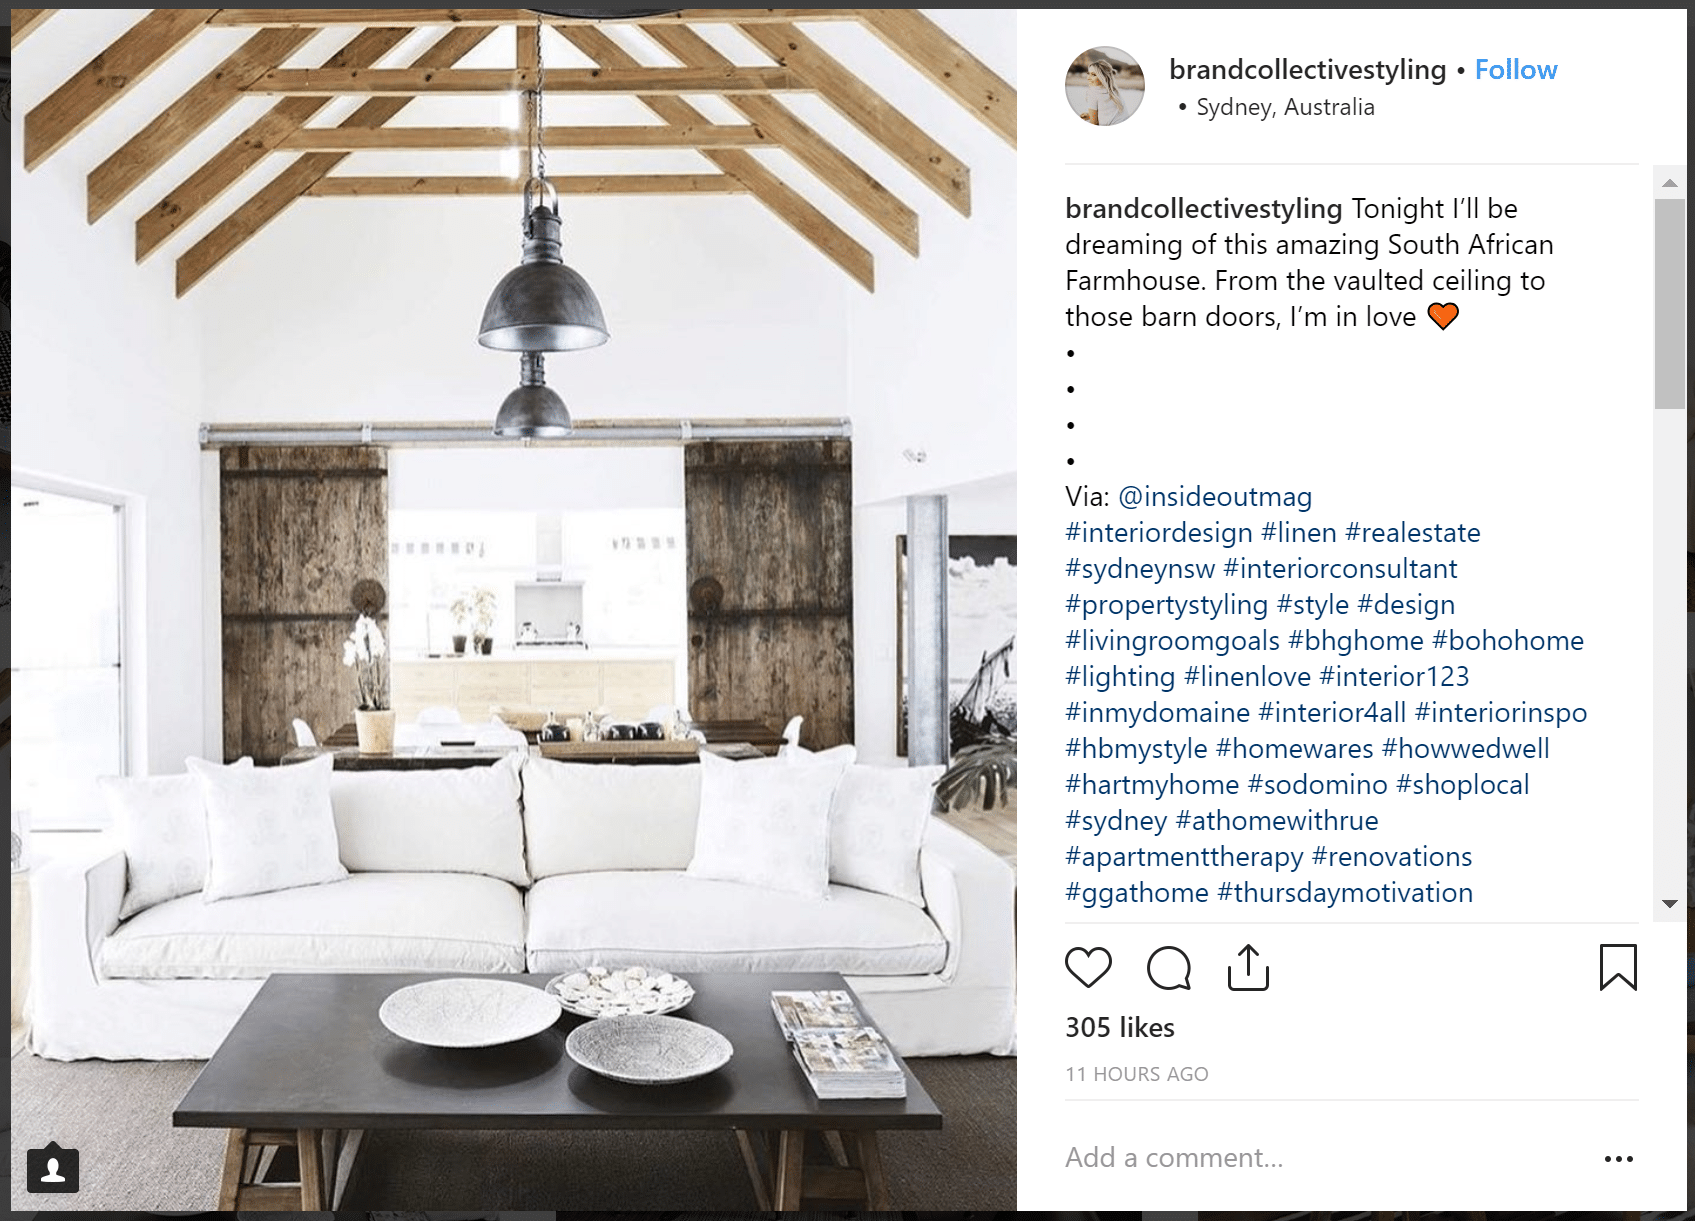 50 Interior Design Hashtags For 2020 Dominate Instagram Today